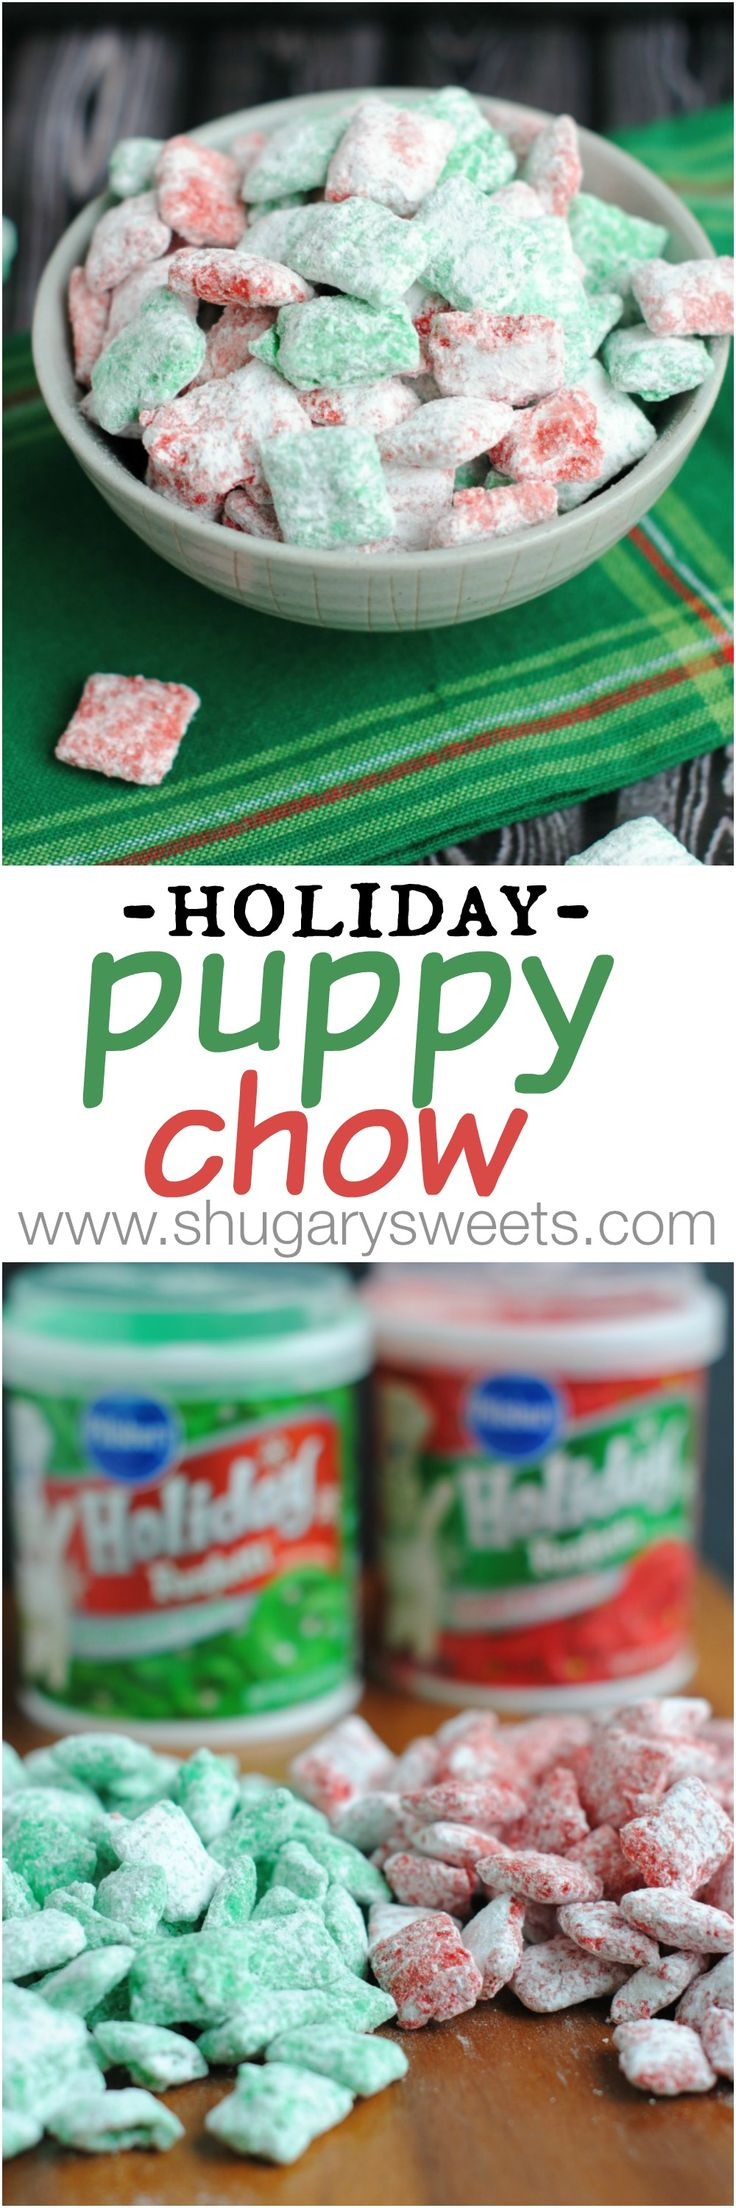 Holiday Puppy Chow: festive red and green muddy buddies for Christmas!: